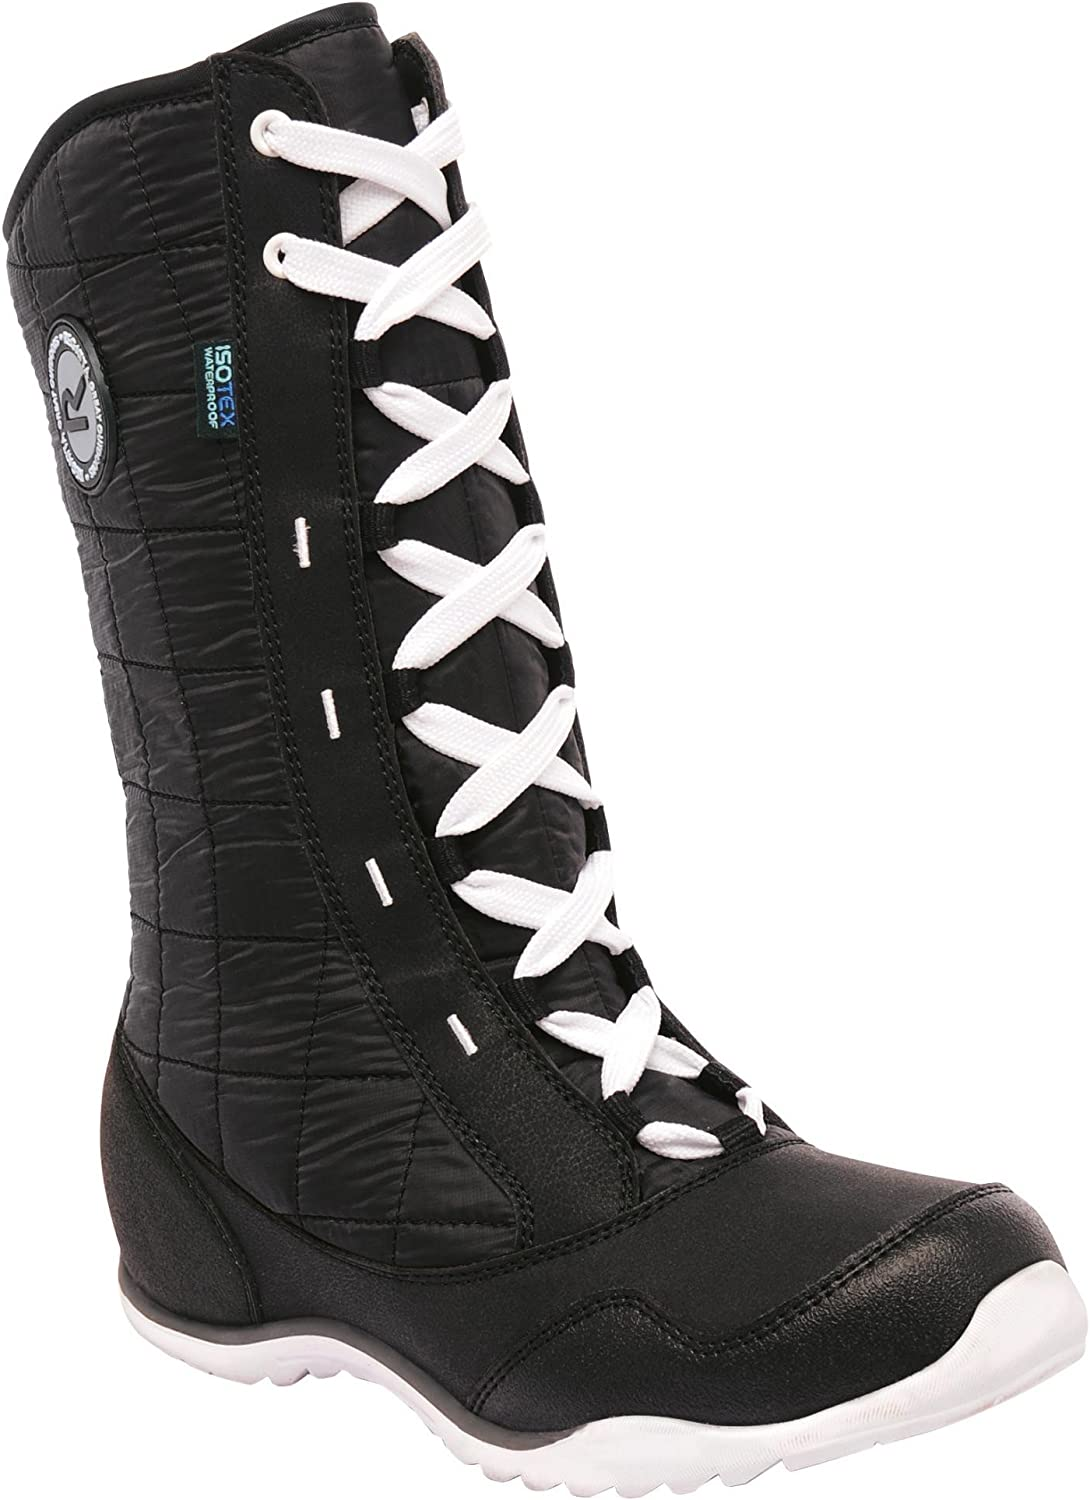 Regatta Great Outdoors Womens Ladies Northstar Lace Up Waterproof Winter Boots